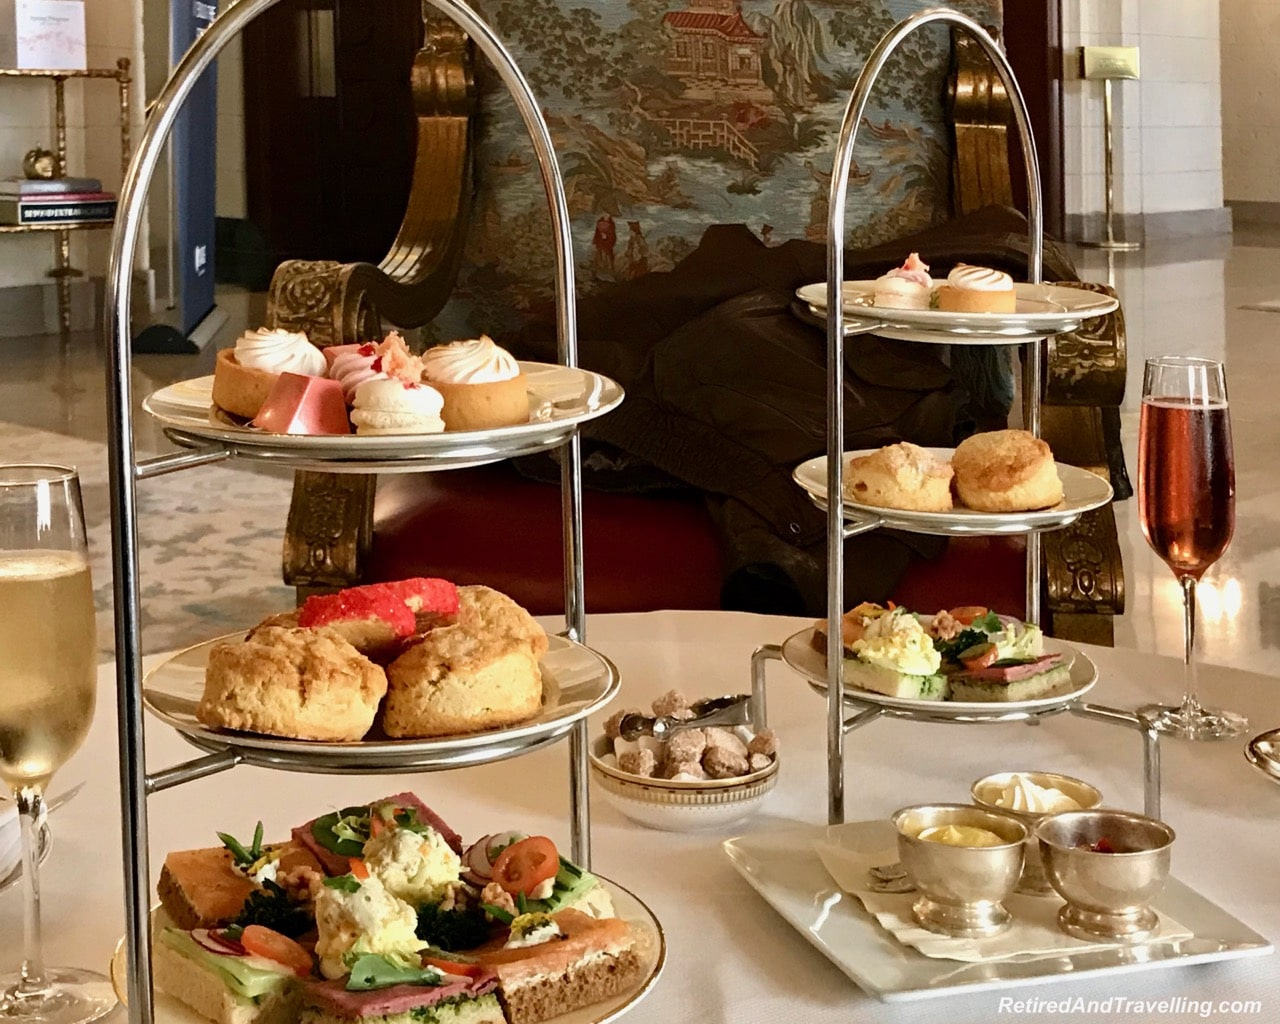 Afternoon Tea Sweet and Savoury - Afternoon Tea and Champagne at St Regis Washington.jpg